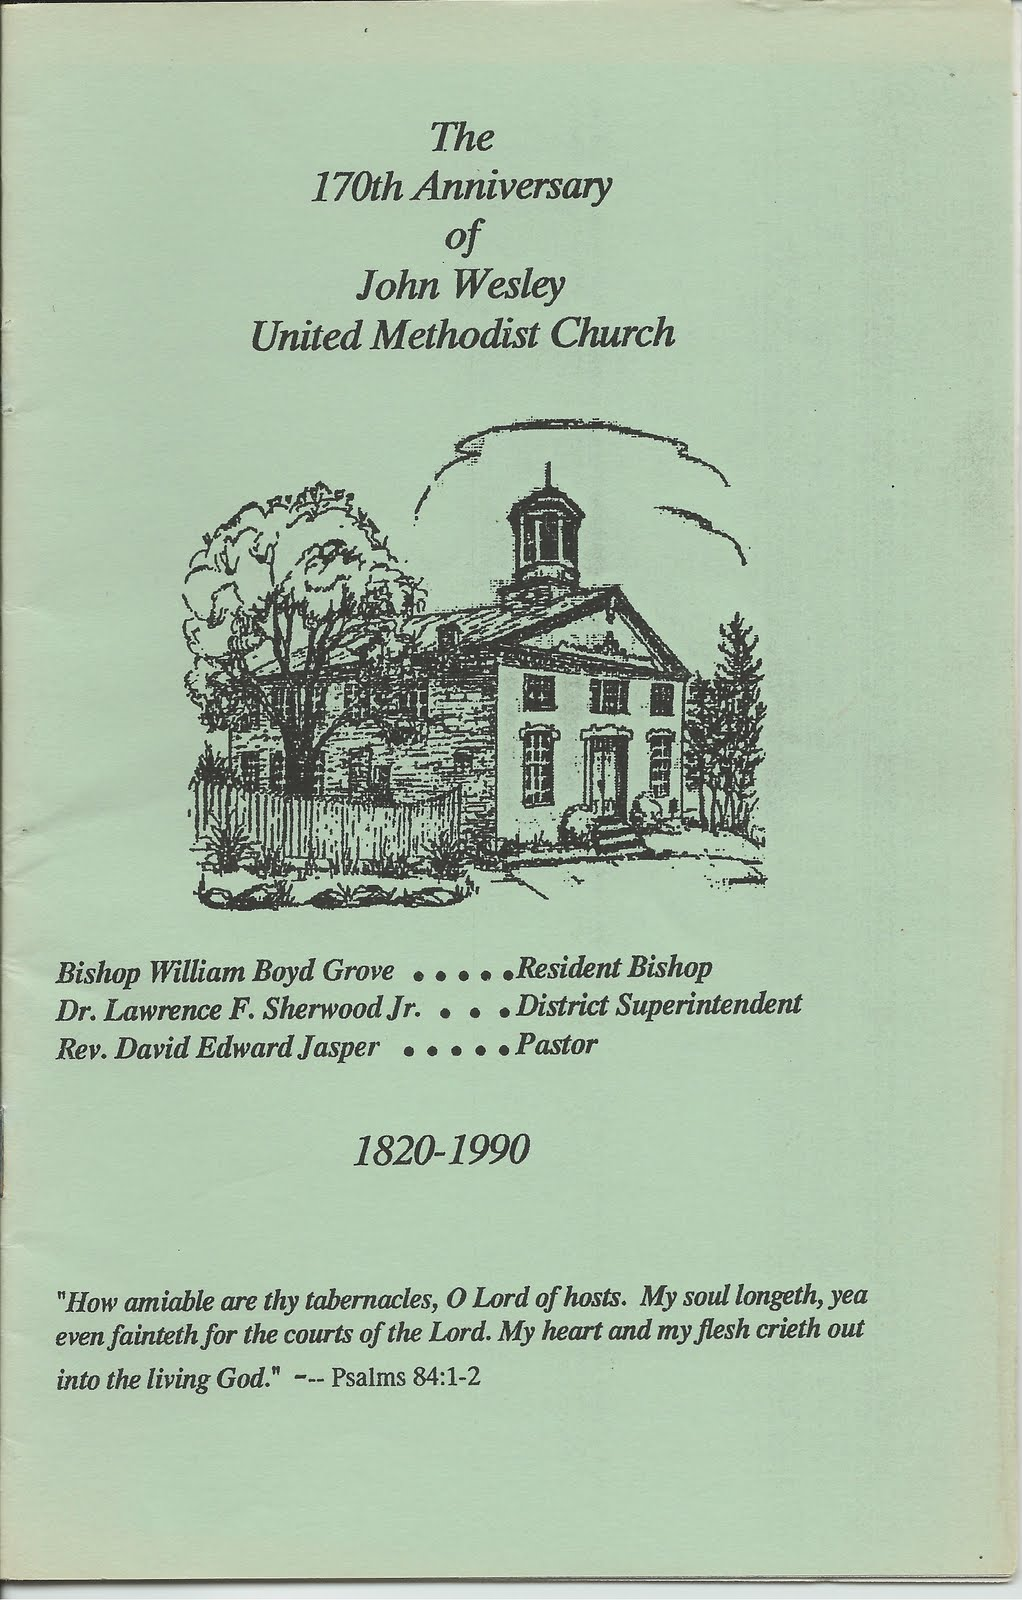 Program for 170th anniversary of church in 1990